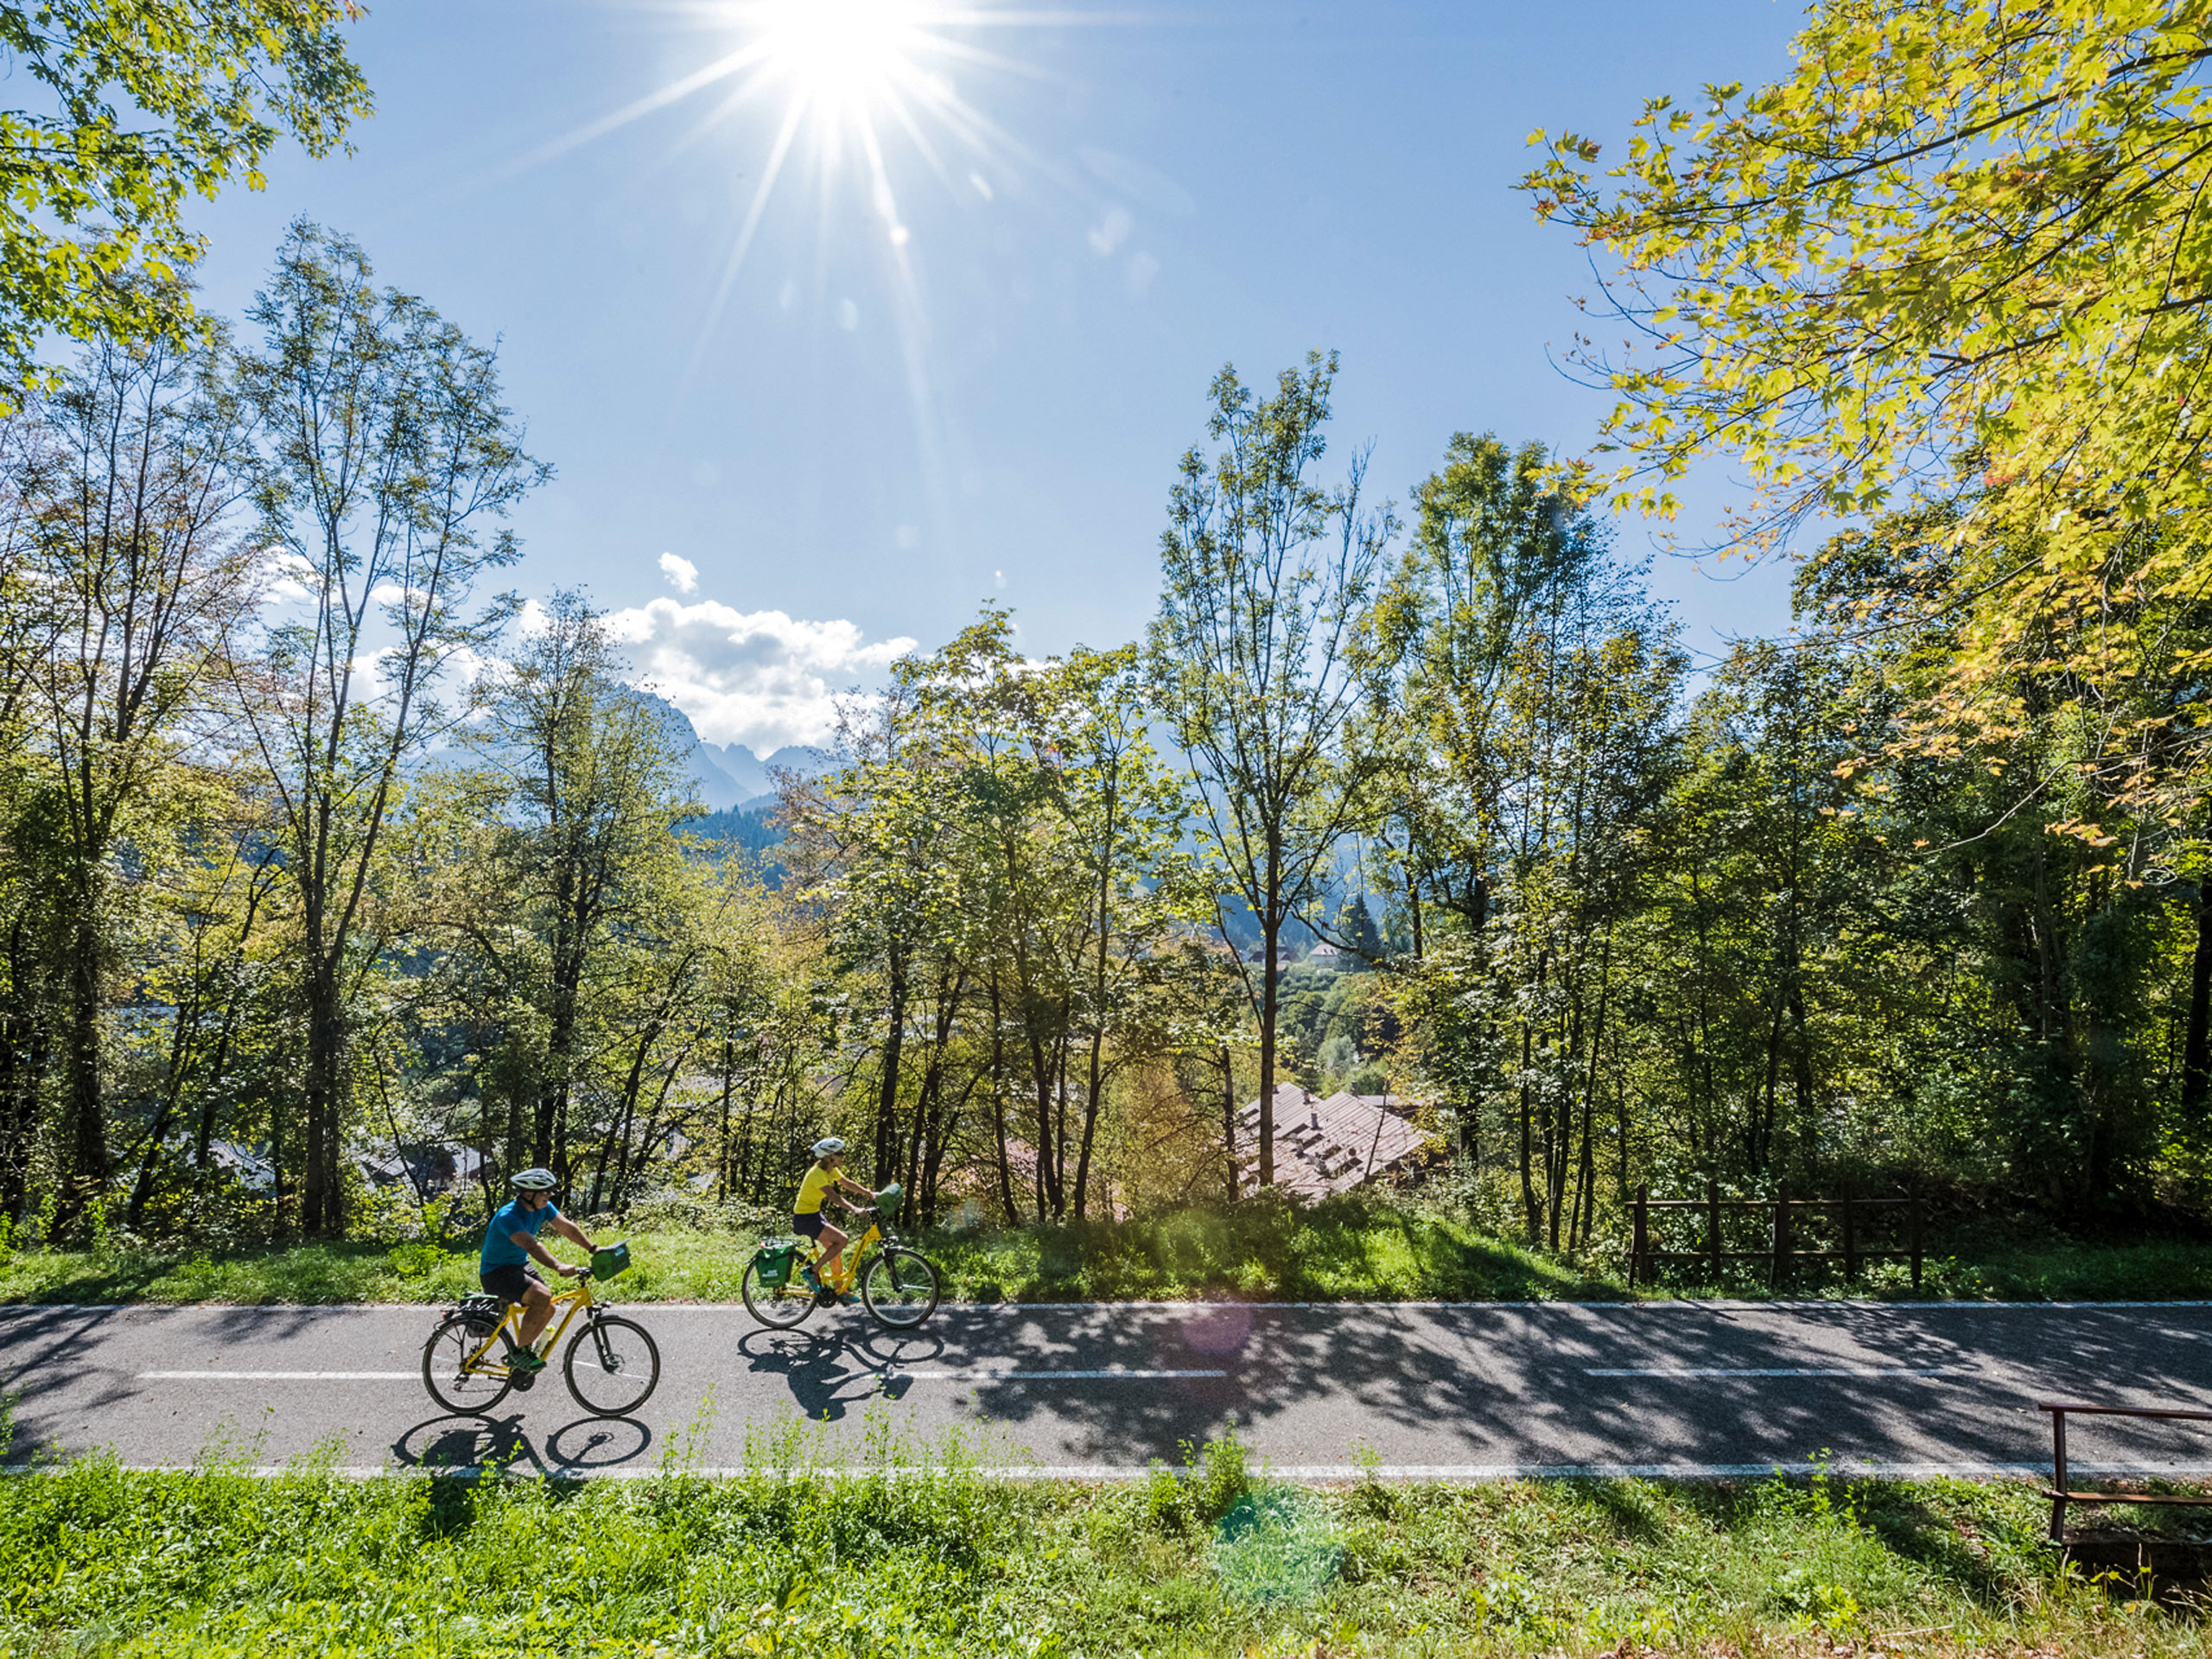 Cycling on a sunny day